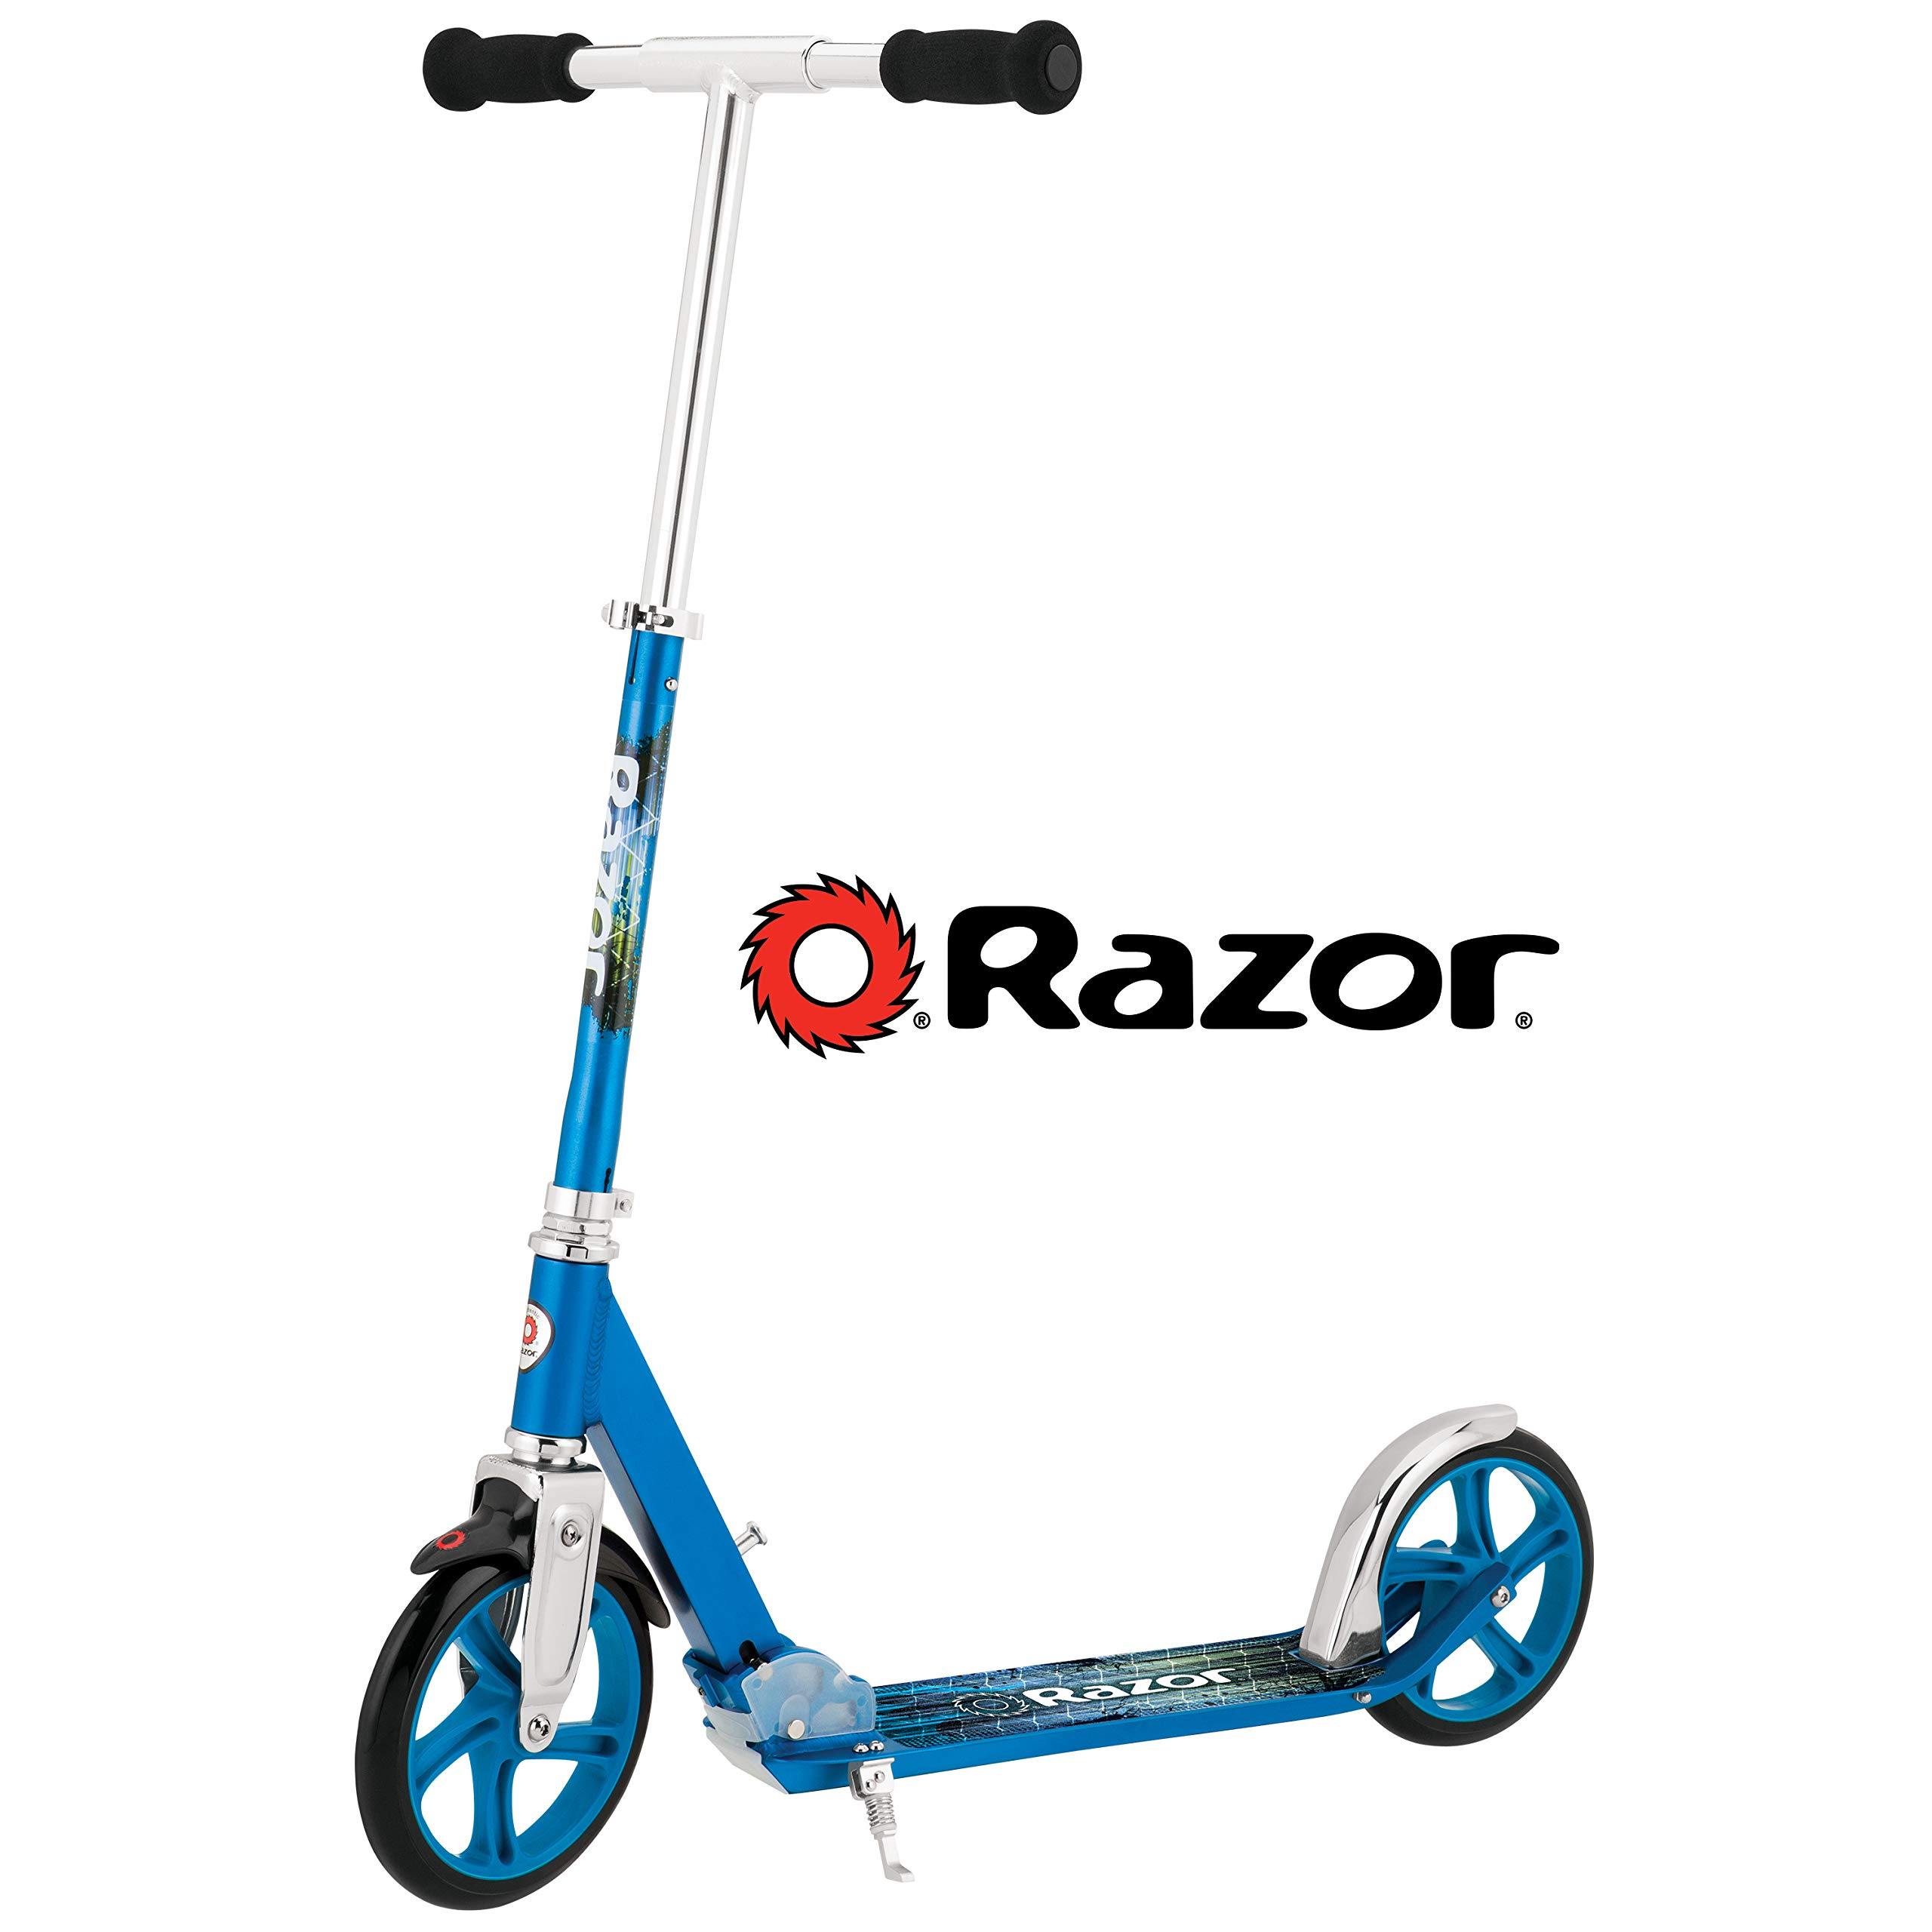 Razor A5 LUX Kick Scooter - Blue by Razor